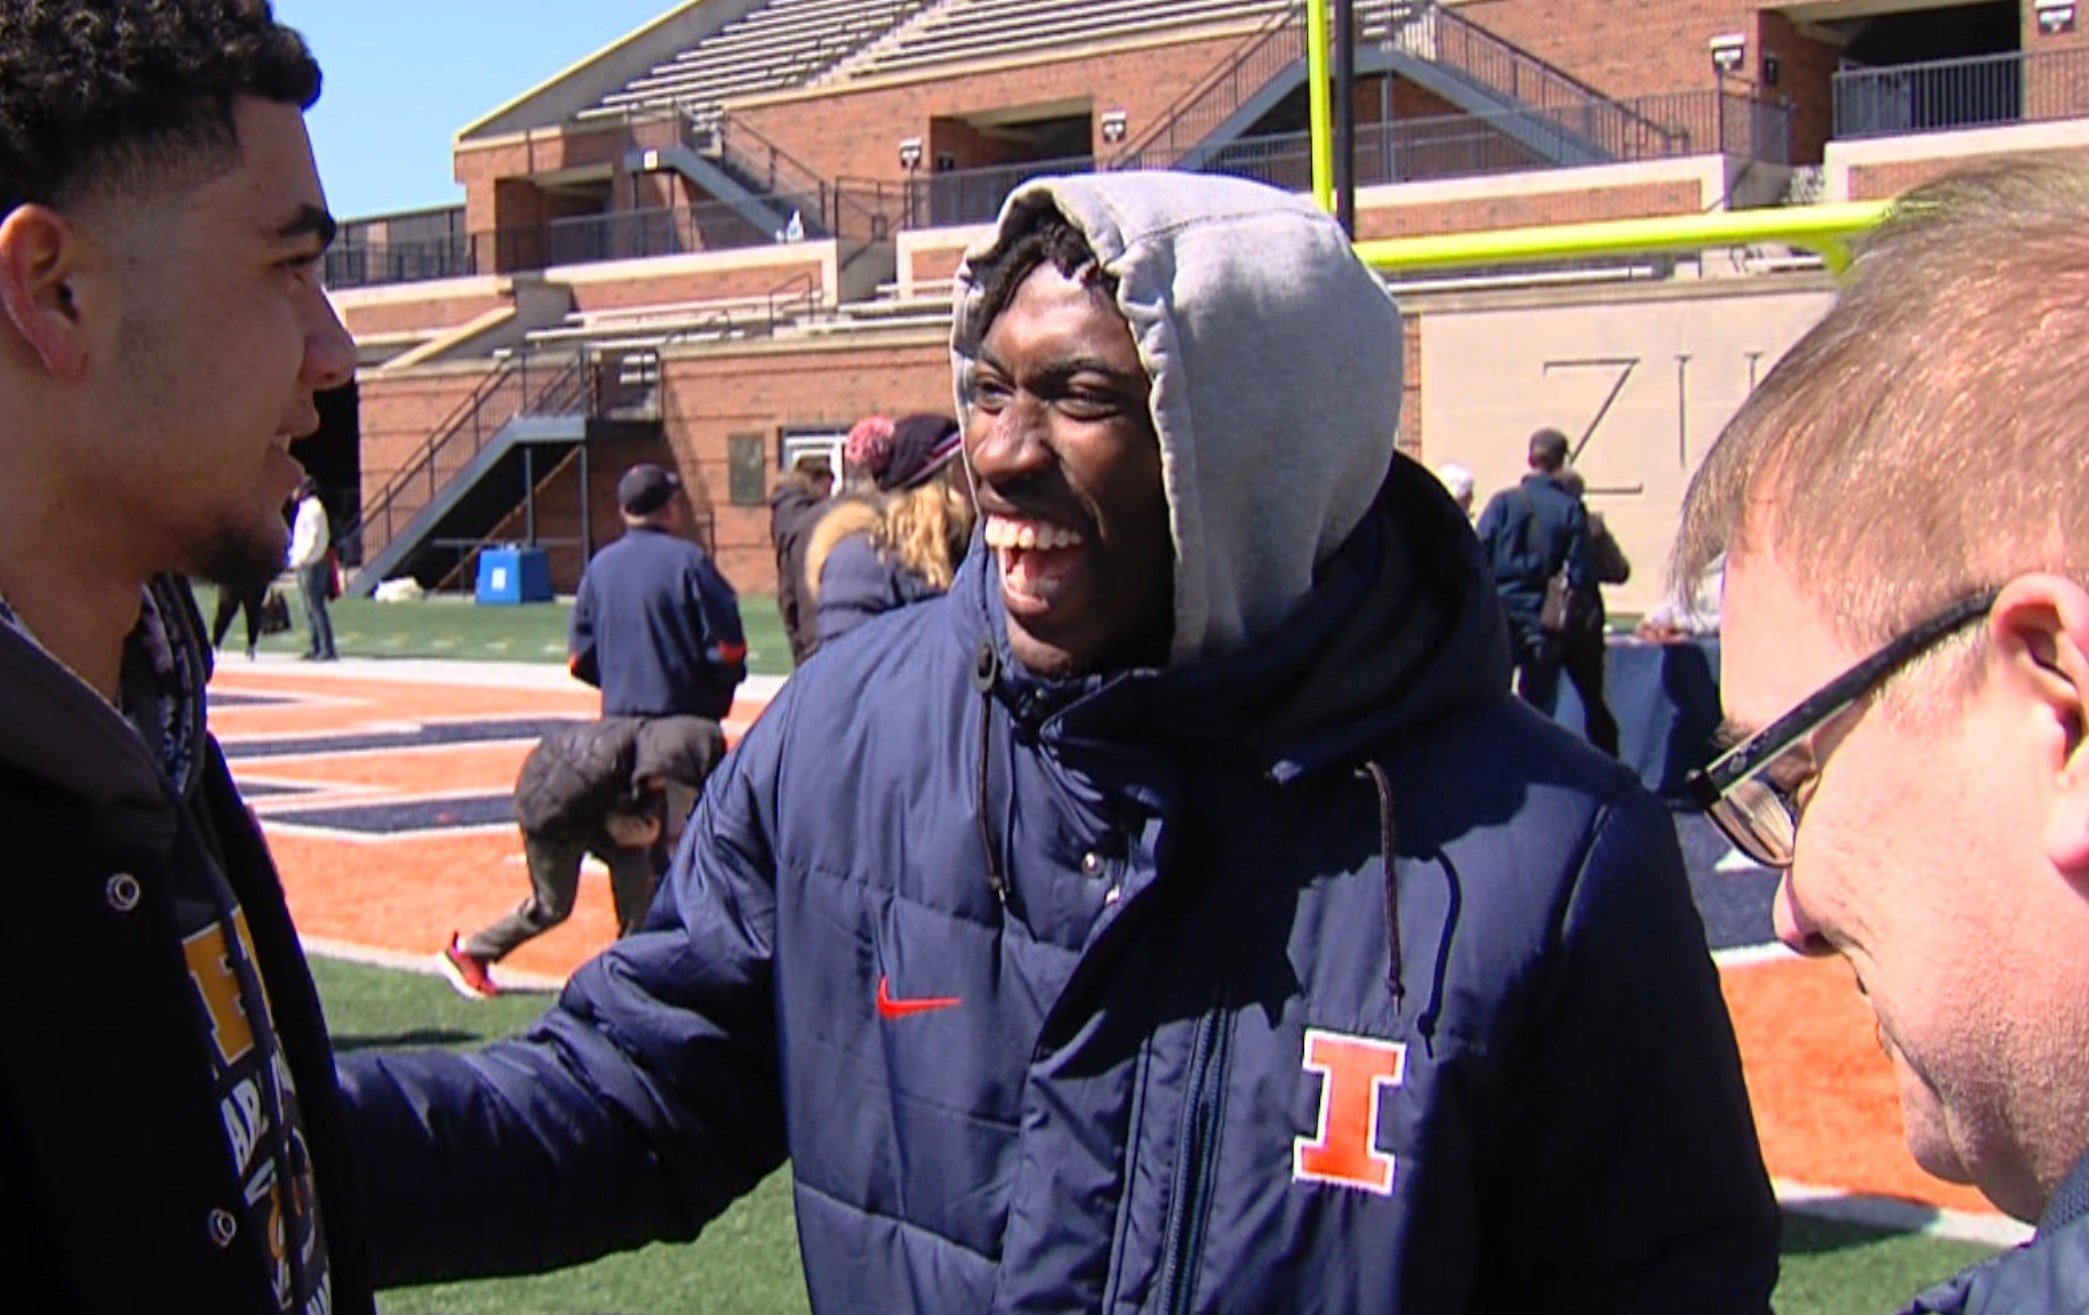 Marquez Beason is a national top 60 prospect who has been an outspoken Illini recruiter among fellow Class of 2019 members and beyond, including at Saturday's spring scrimmage.